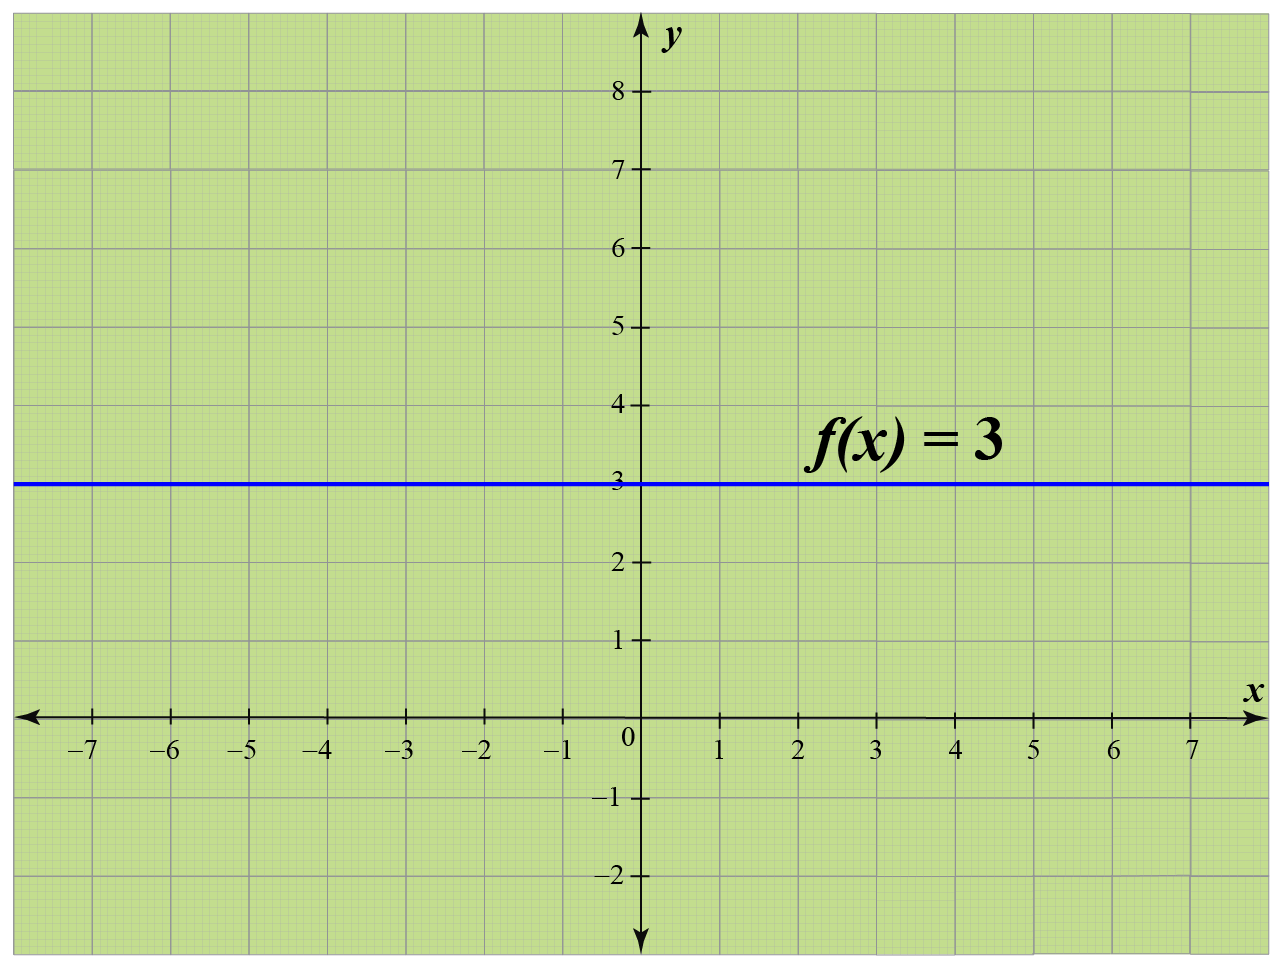 graph of a constant function f(x) = 3